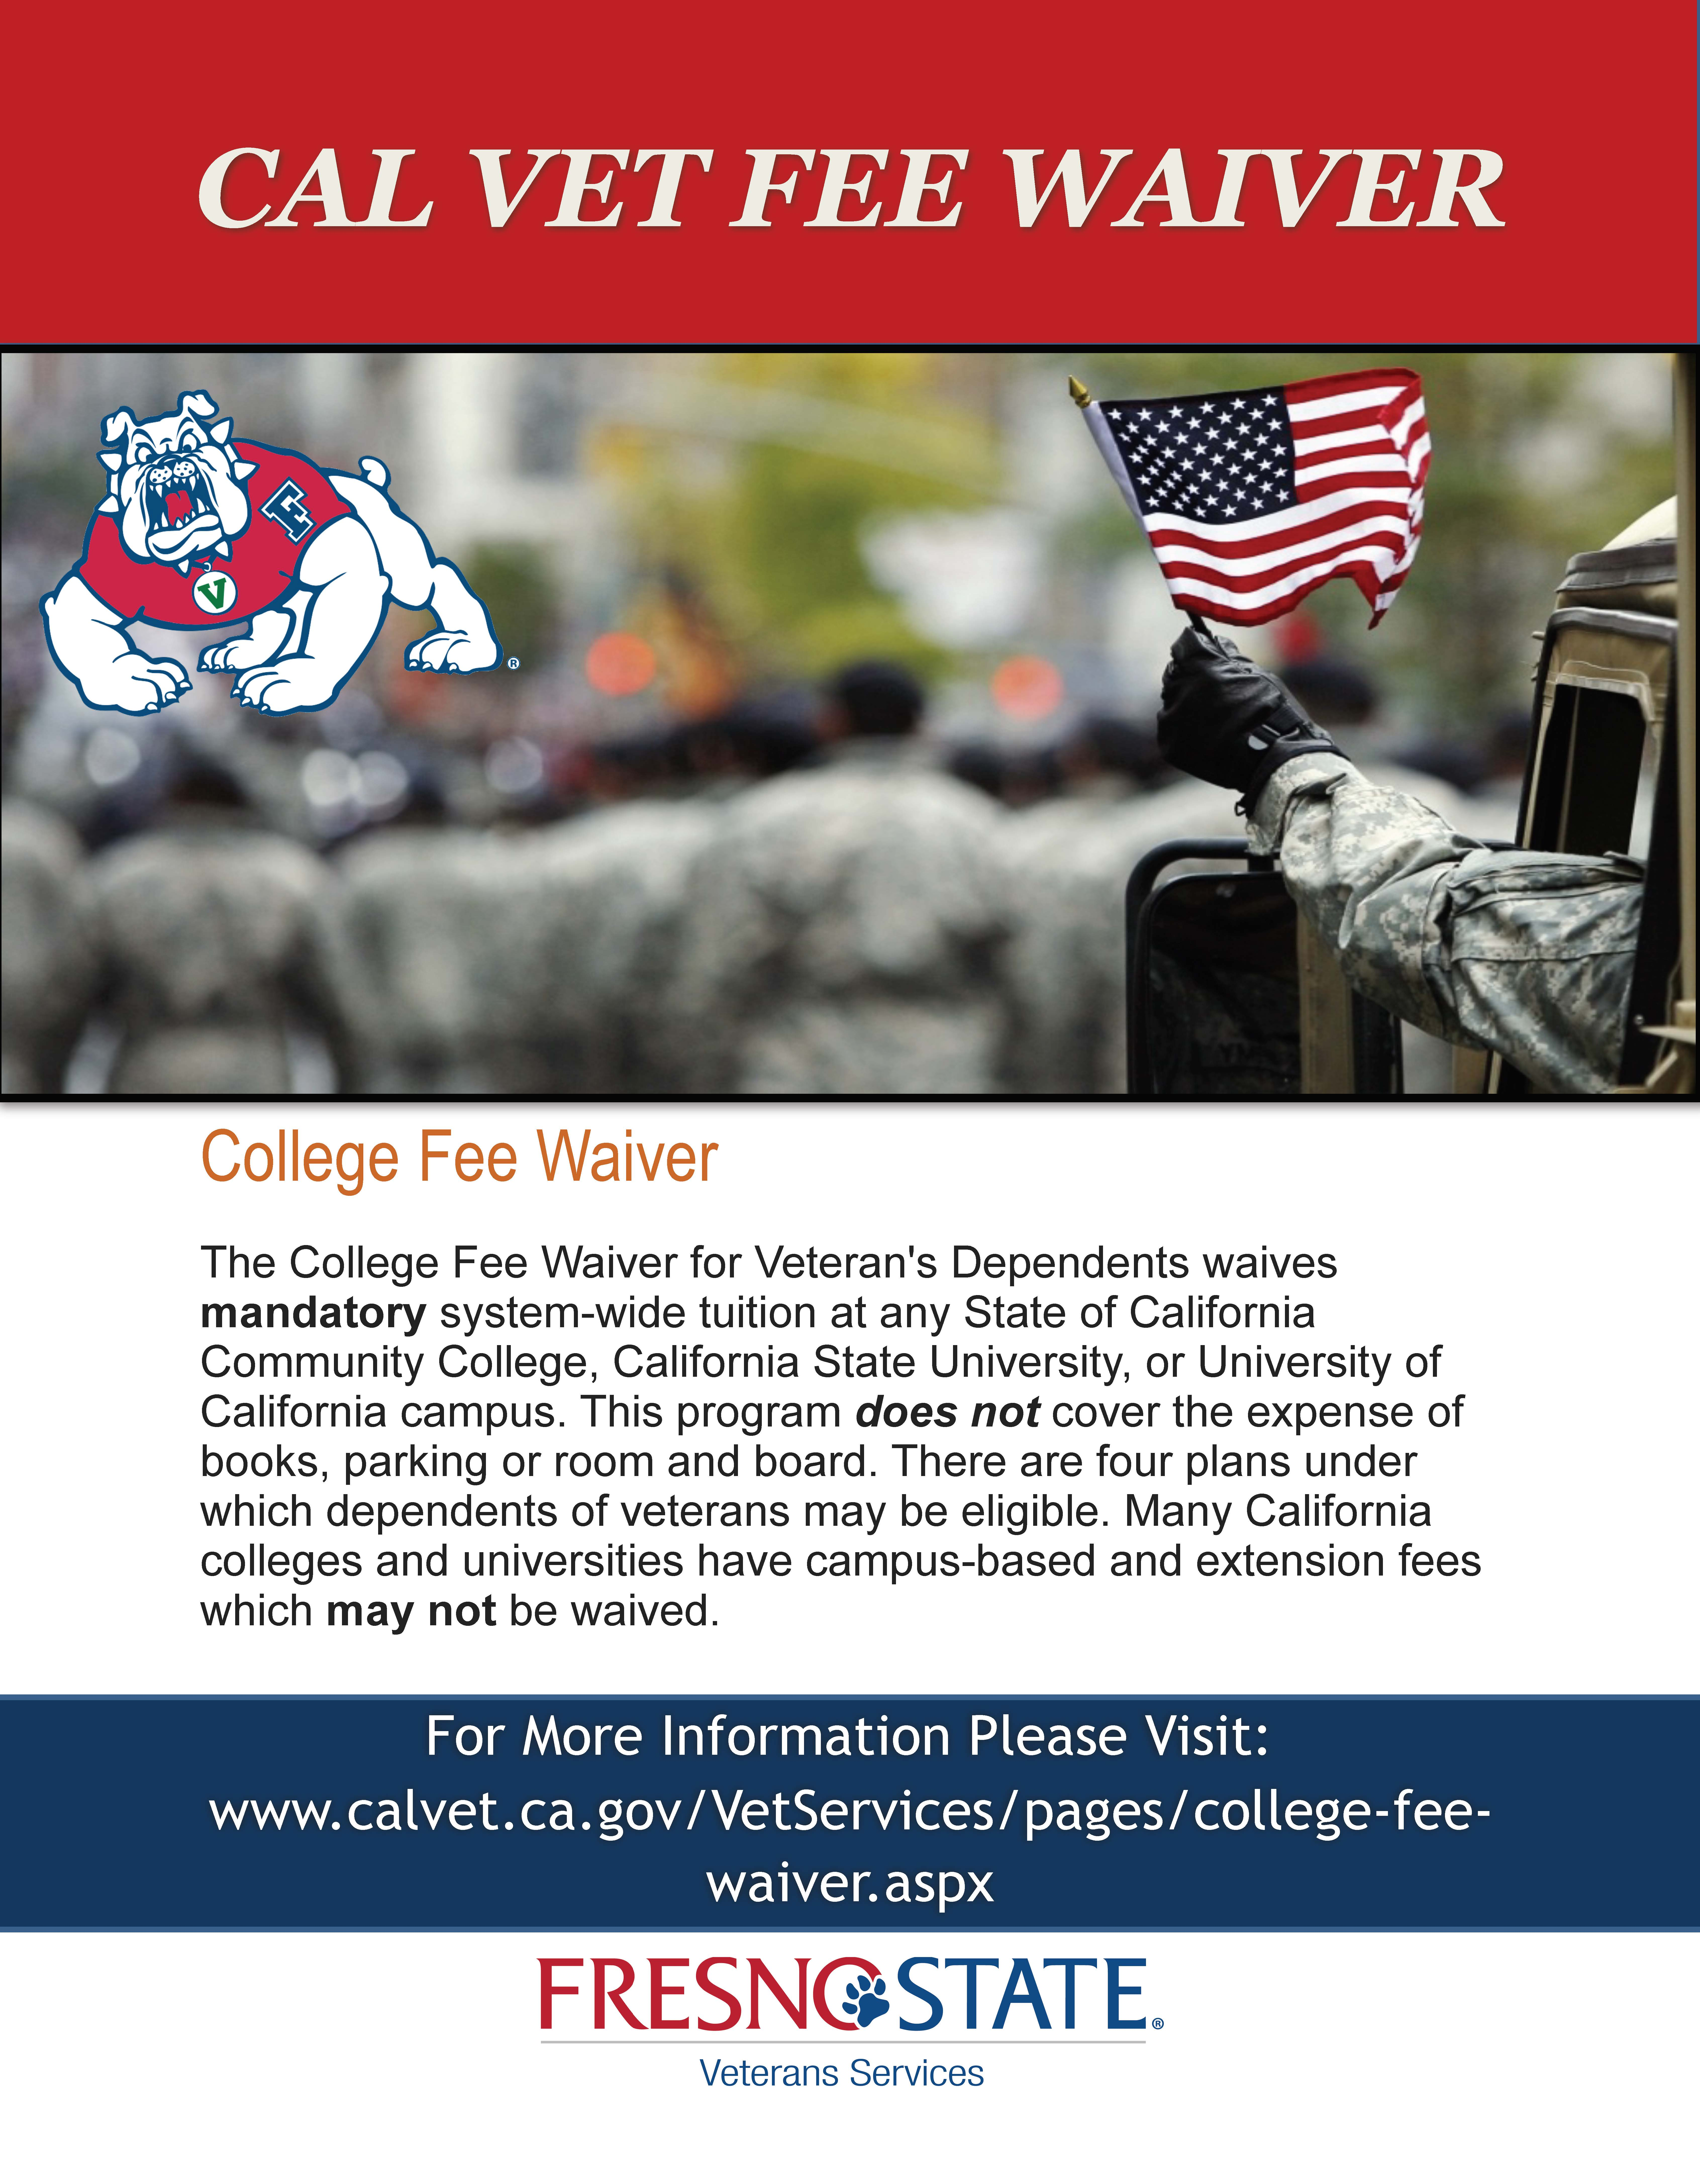 College Fee Waiver